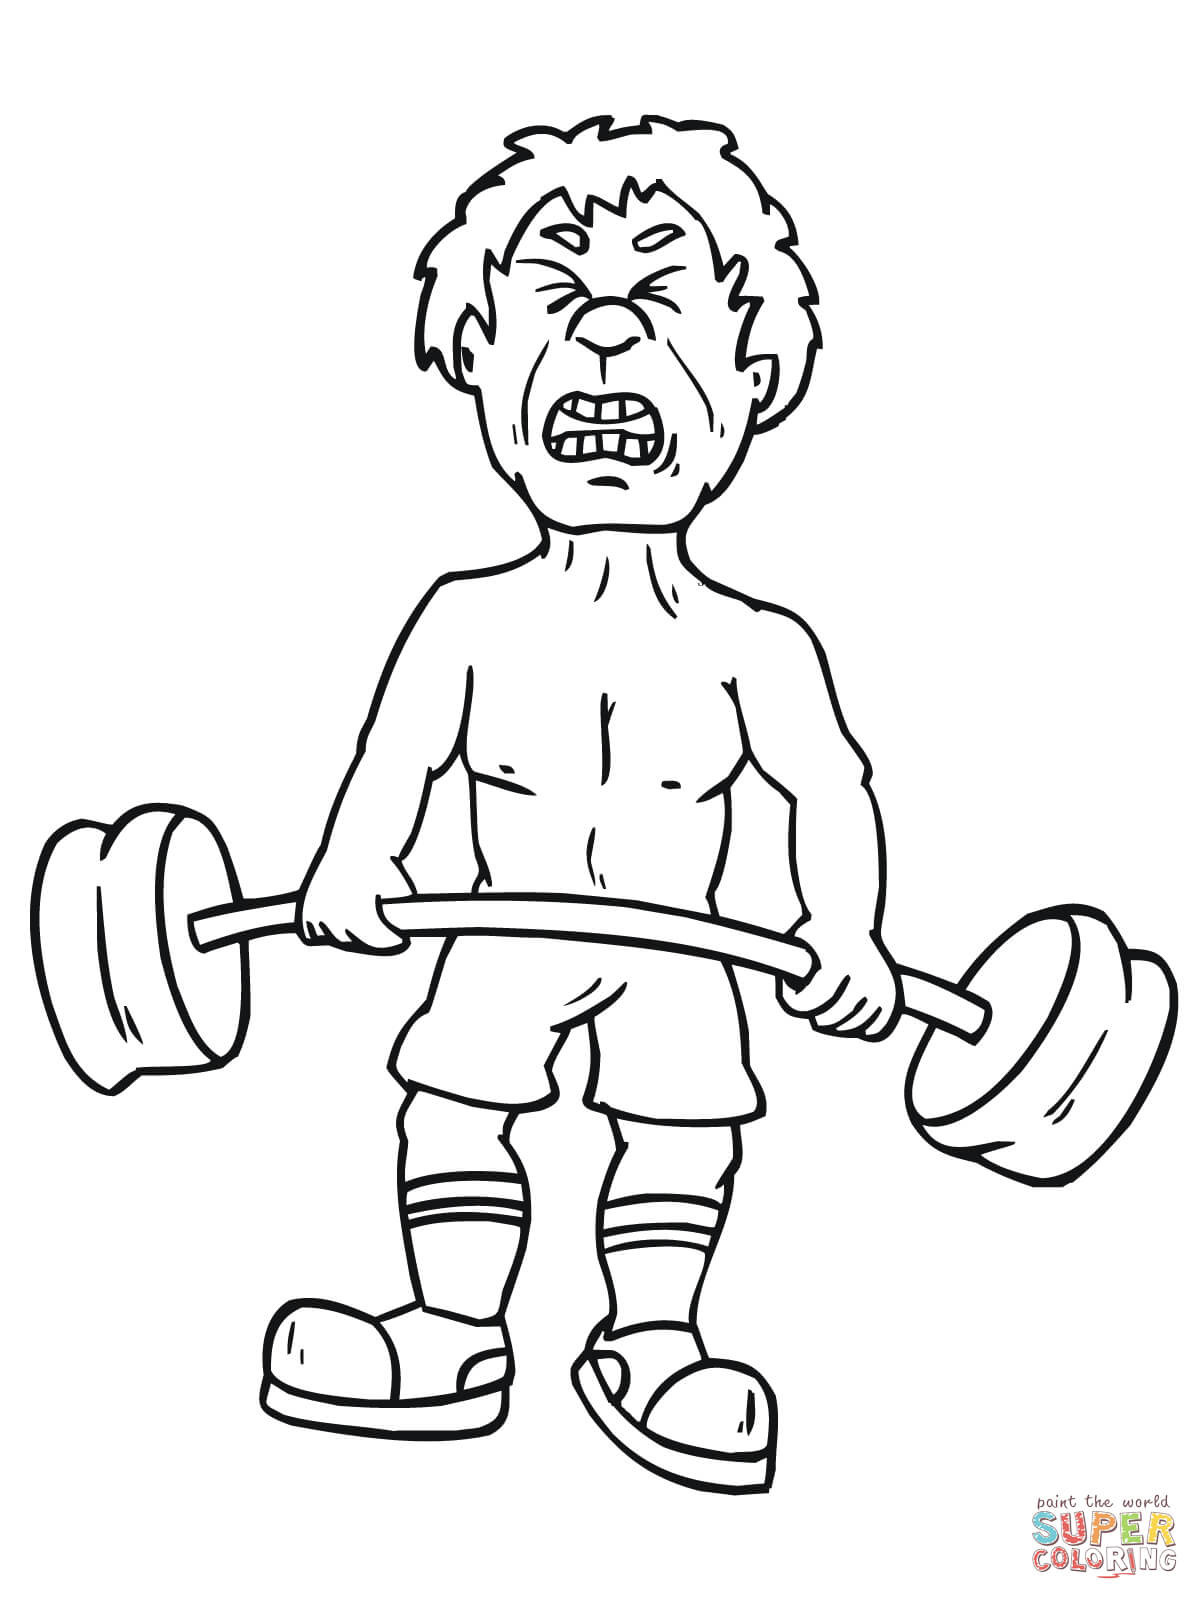 exercise coloring pages fitness coloring pages coloring pages to download and print exercise coloring pages